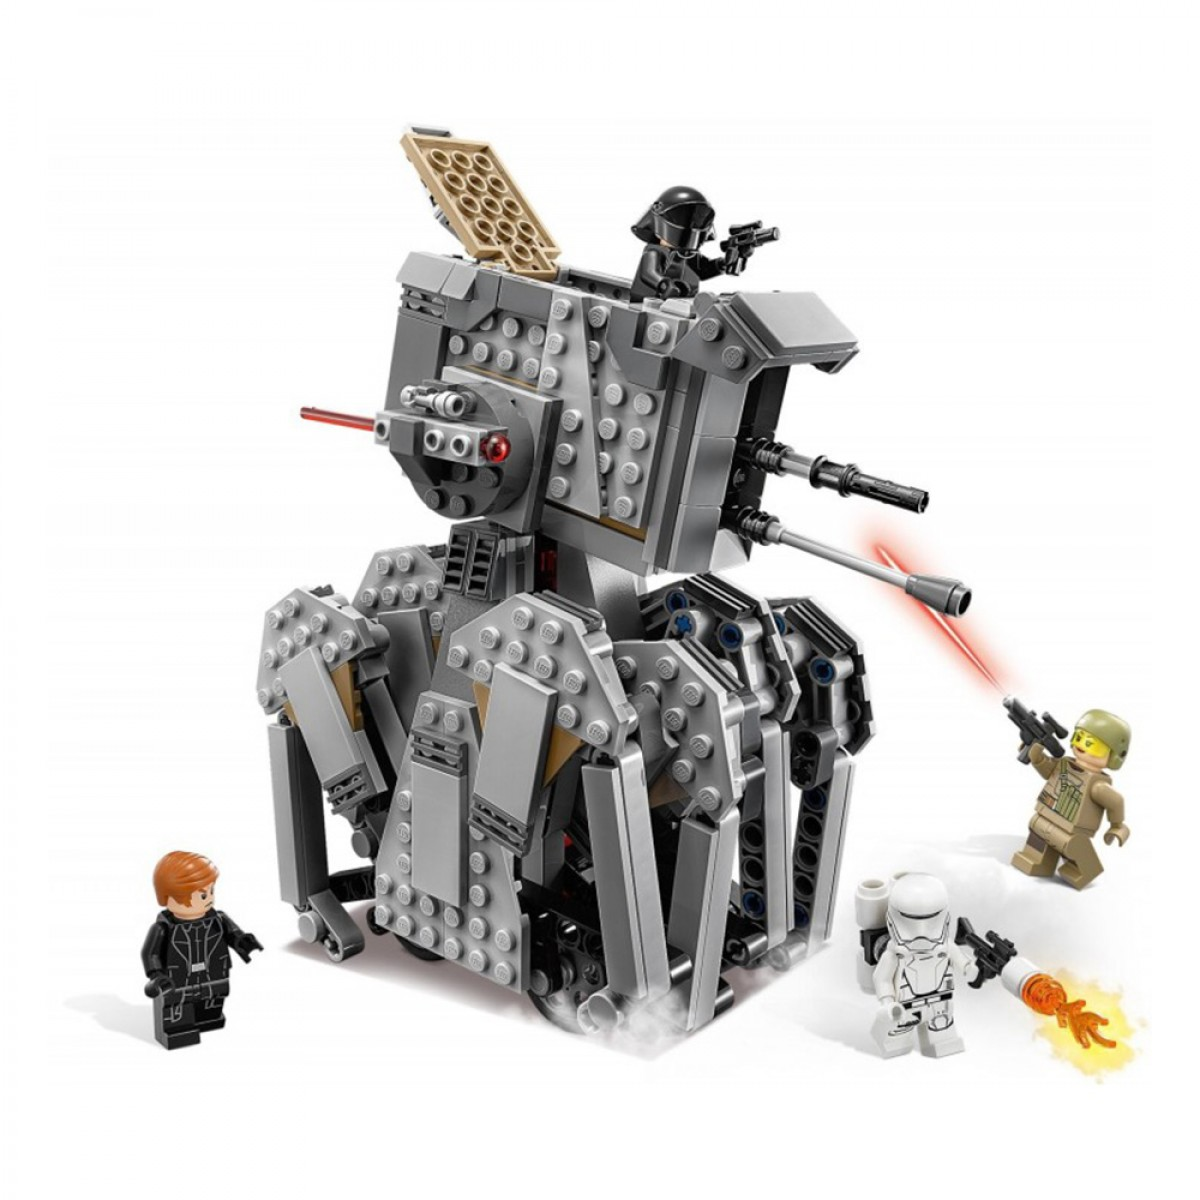 LEGO CONF.GRIZZLY TANK SMALL  75177